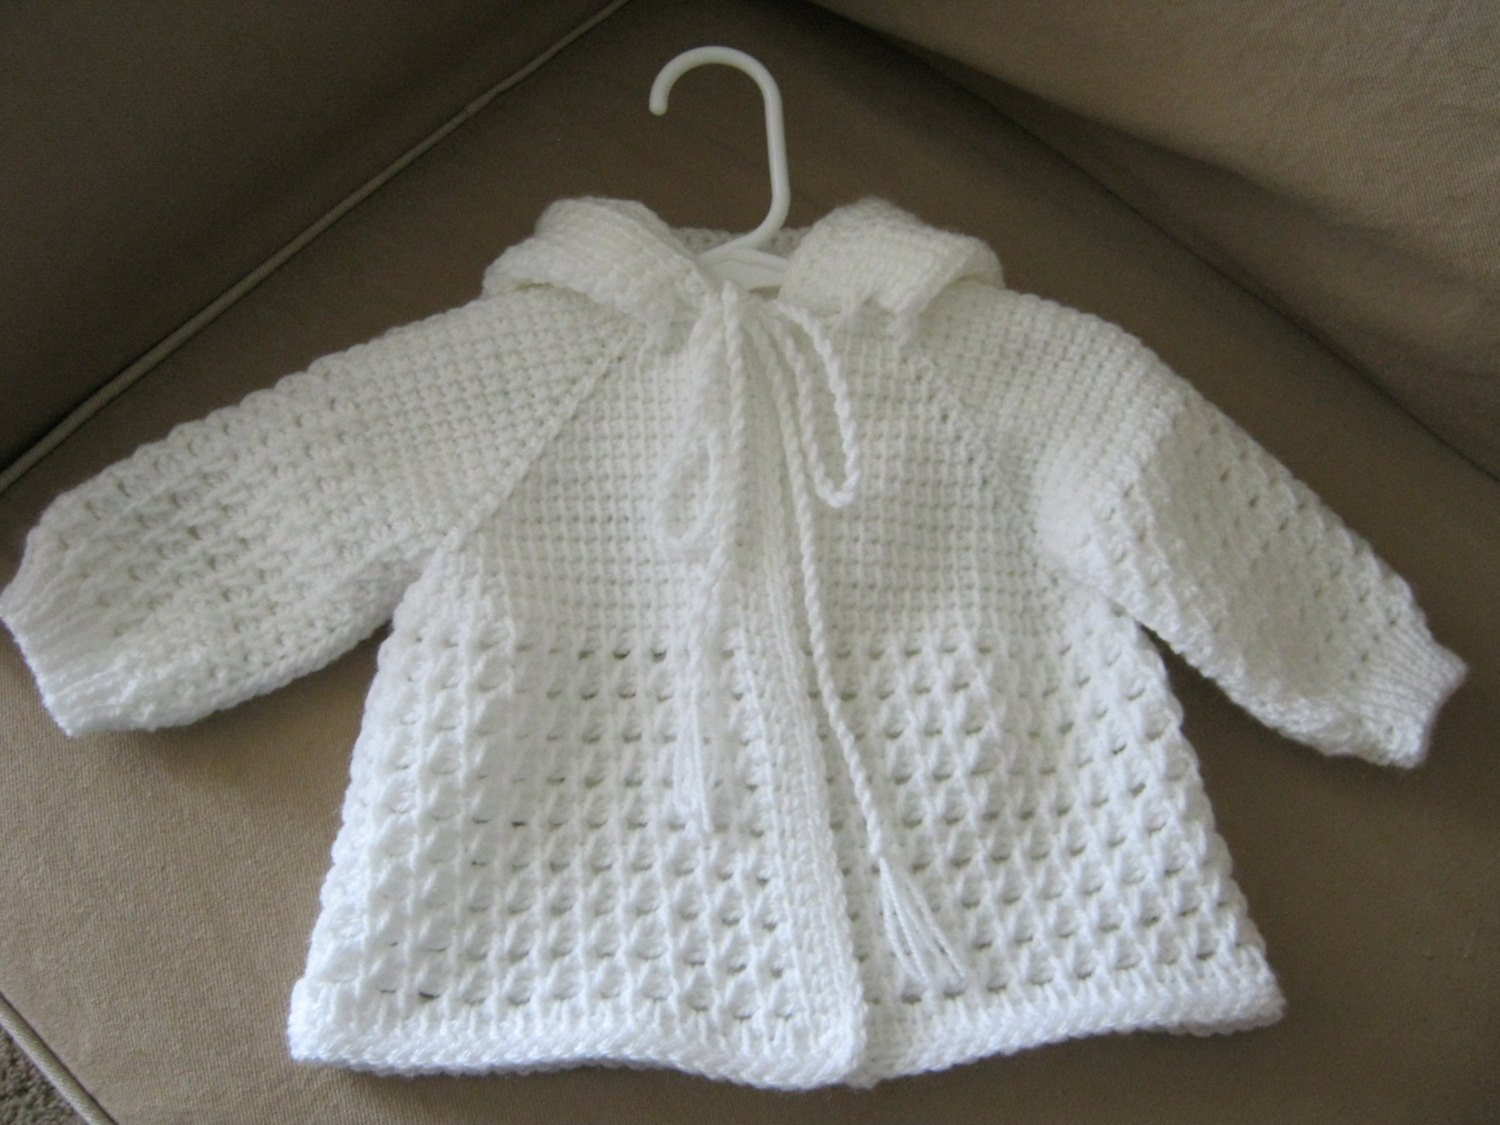 Crochet Baby Sweater Beautiful Handmade Baby Sweaters Design Of Charming 44 Images Crochet Baby Sweater